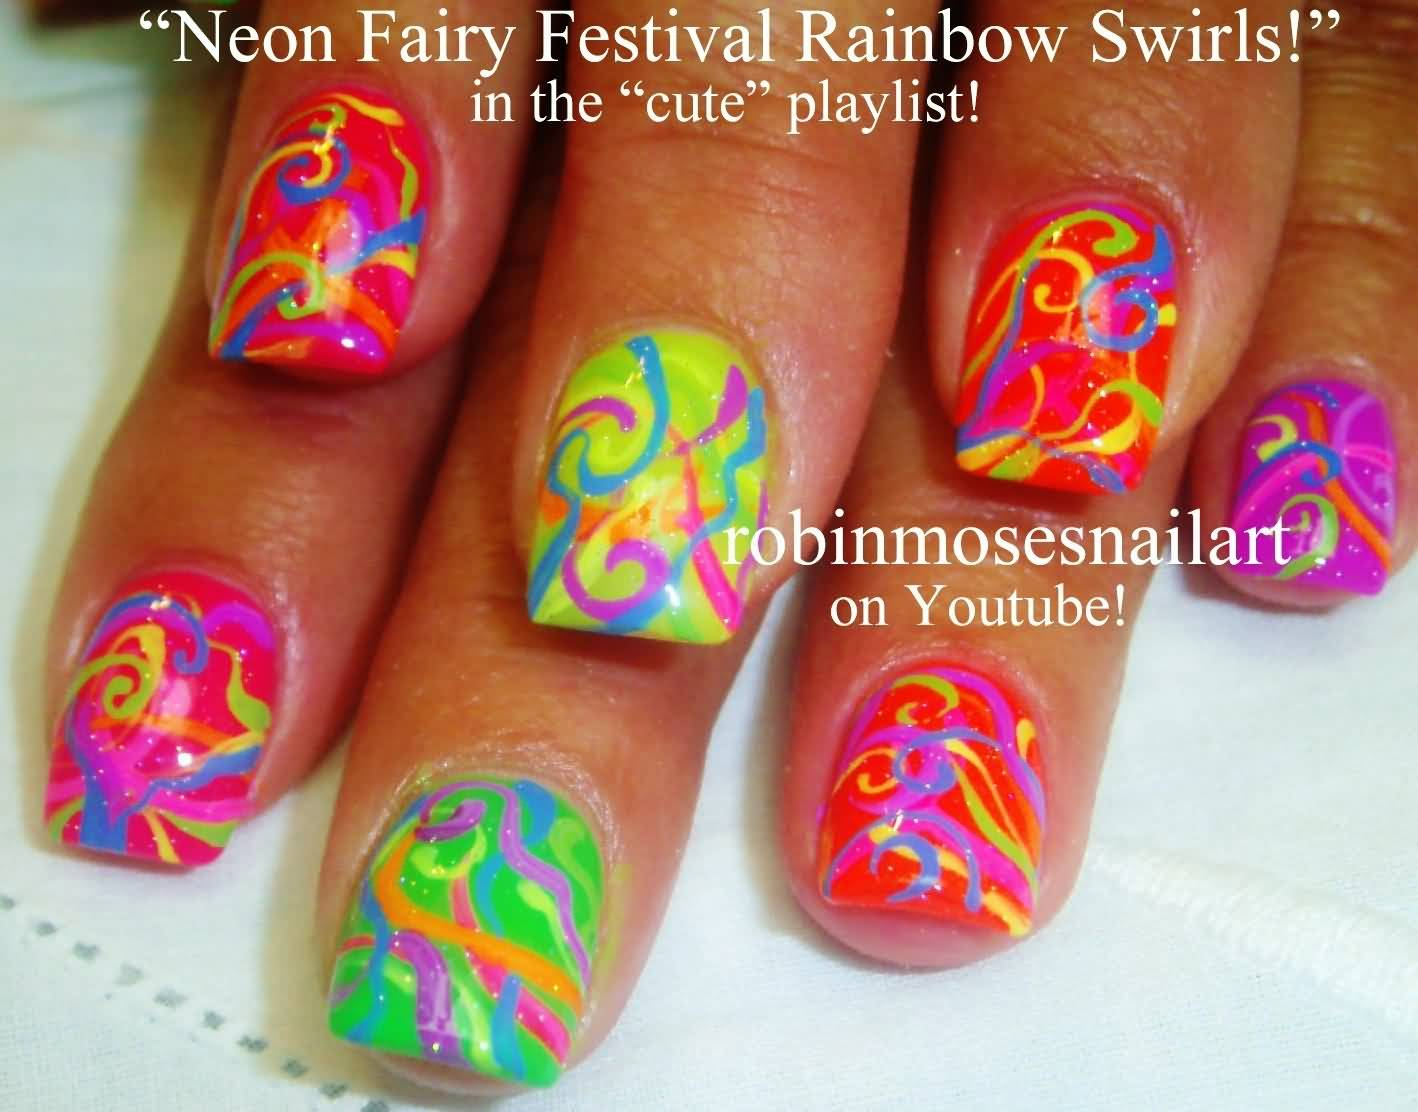 Neon Fairy Festival Rainbow Swirls Nail Art